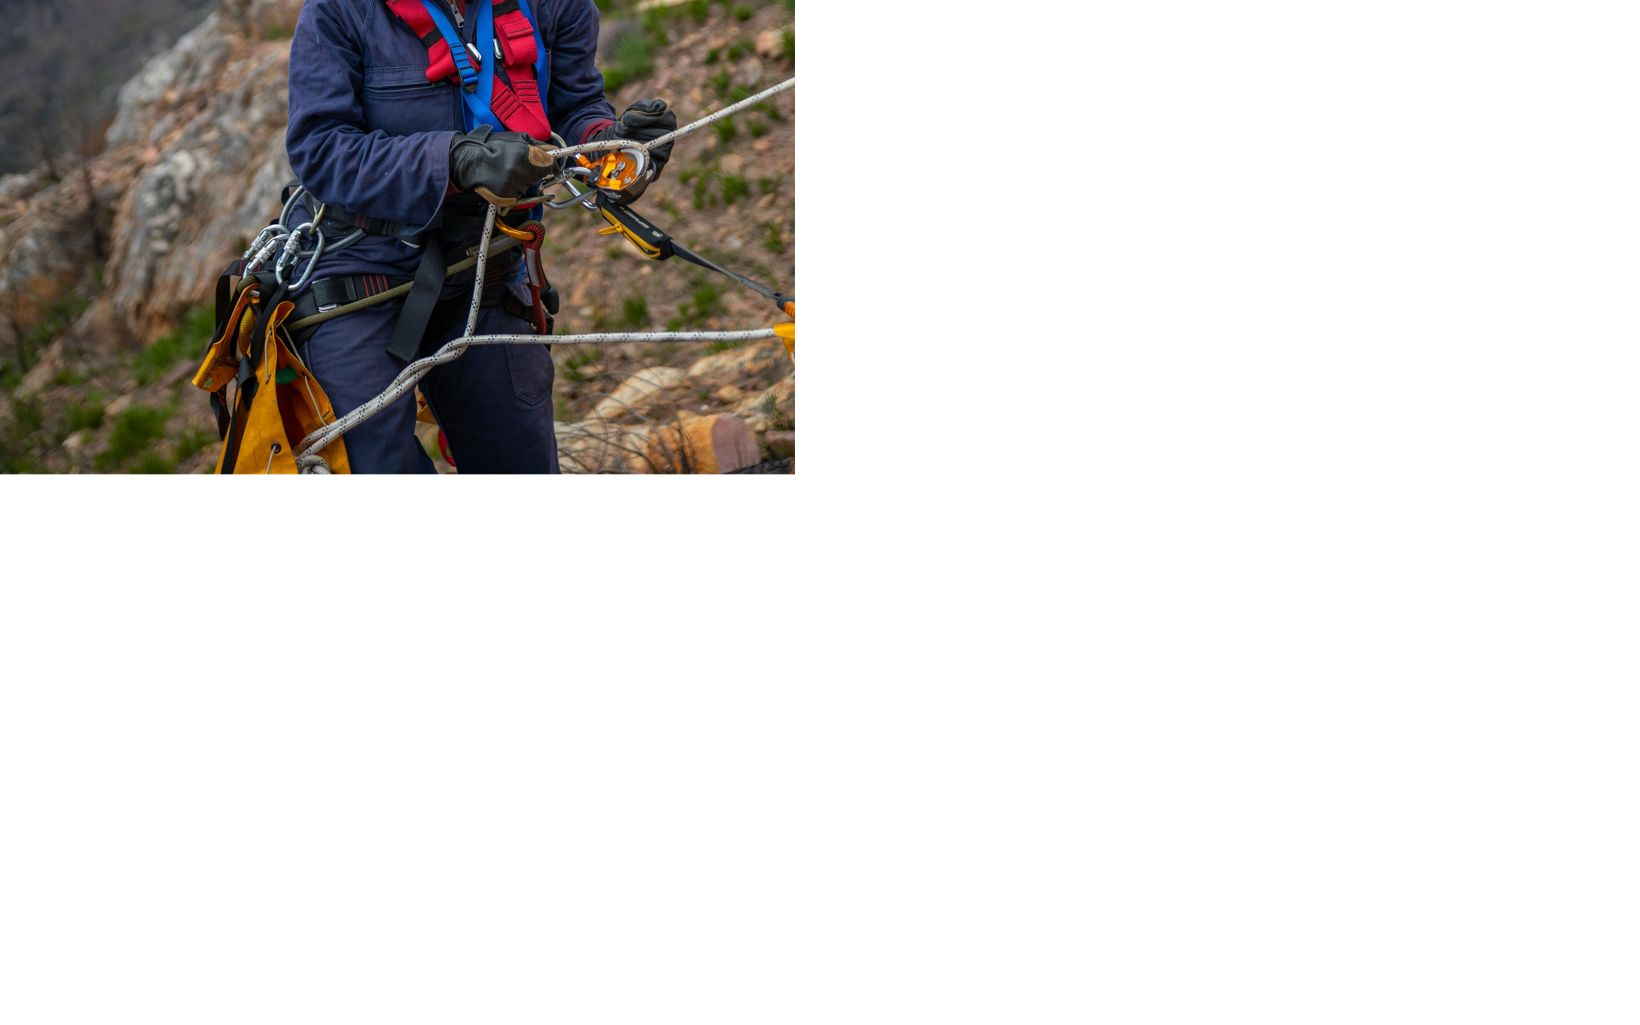 Nelisiwe (Nelly) Mthembu repels down the mountain near Cape Town. The high elevation team is first flown up the mountain in a helicopter and spends several days working.